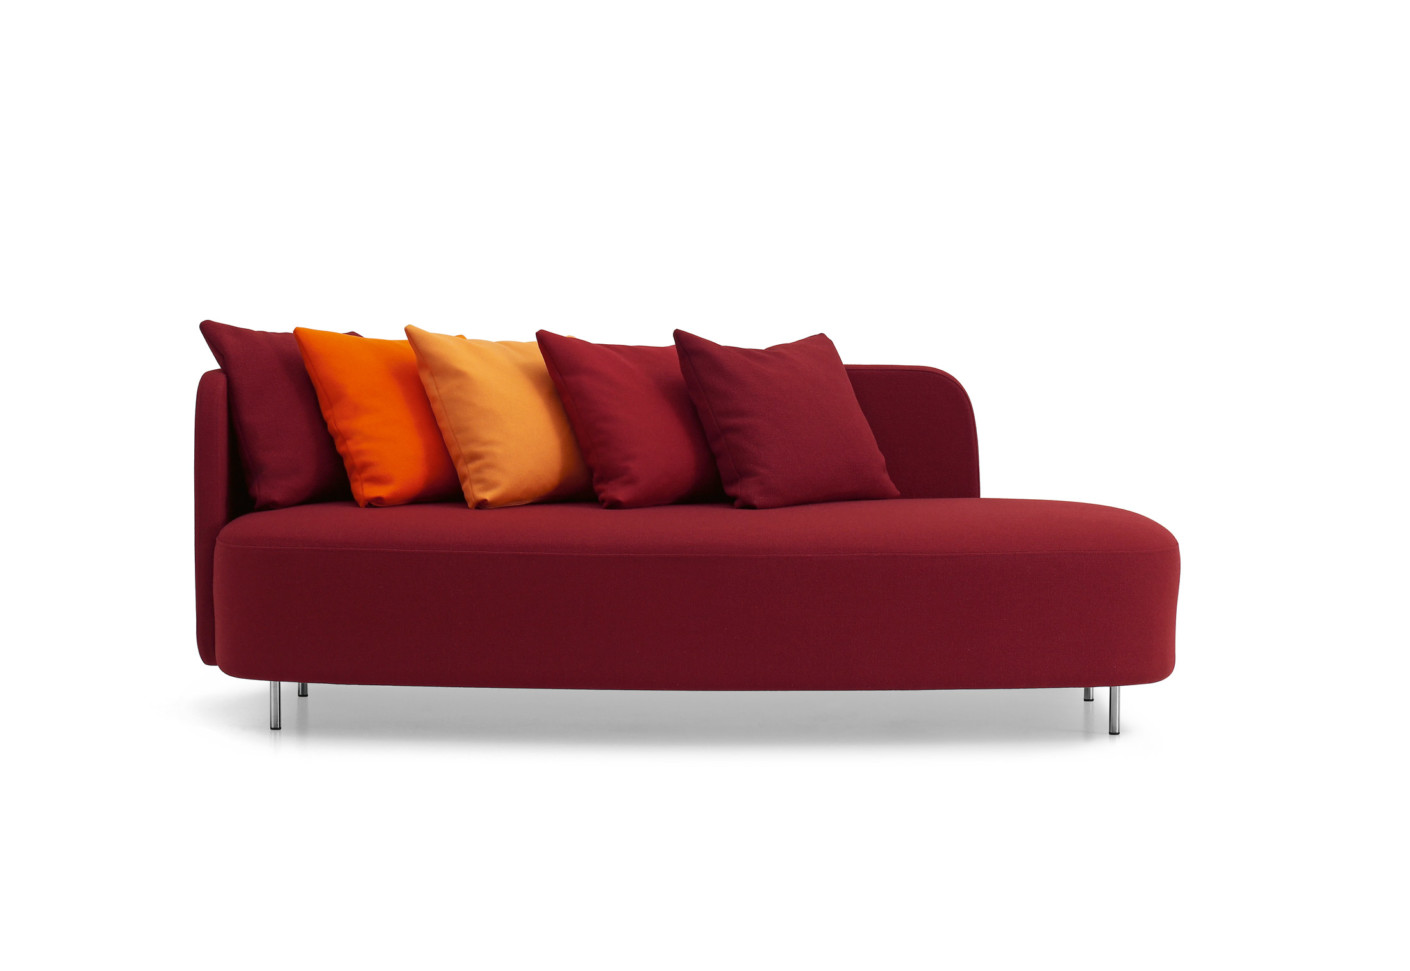 Minima chaise longue by offecct stylepark for Chaise longue manufacturers